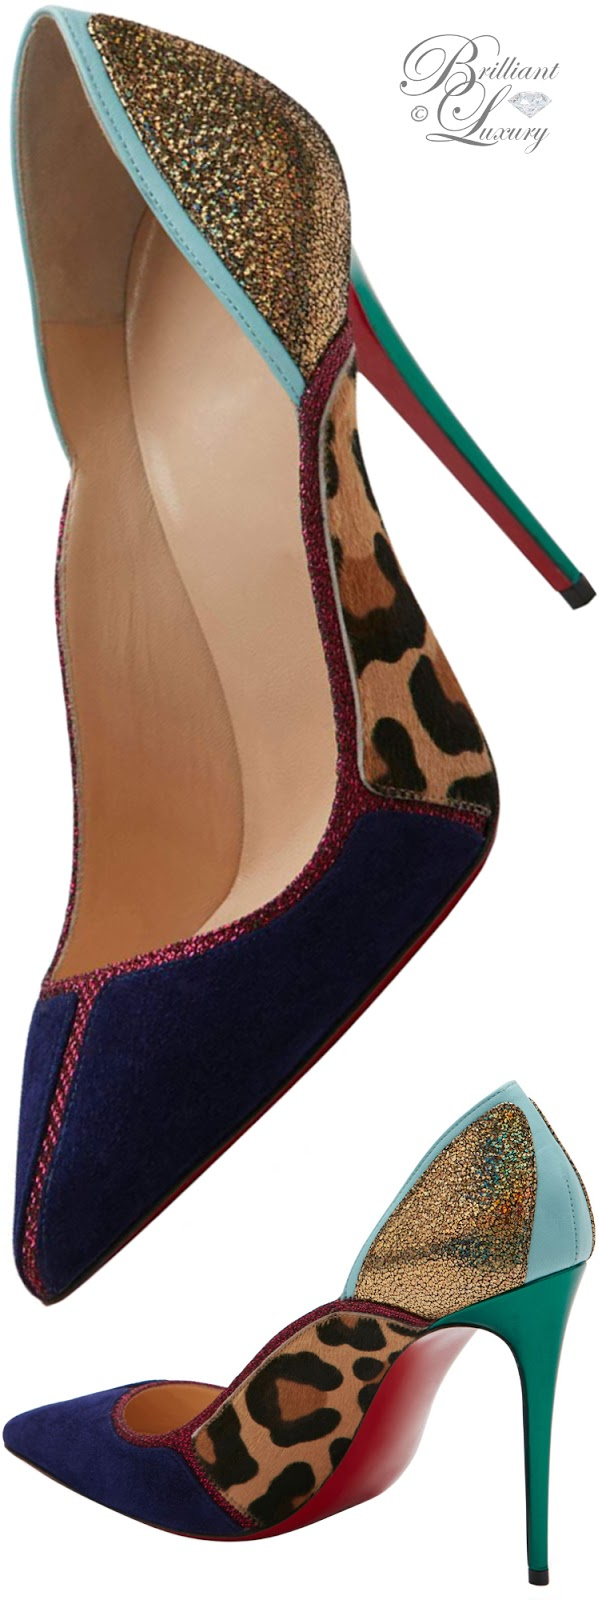 Brilliant Luxury ♦ Christian Louboutin Serianina Pointed-Toe Red Sole Pump